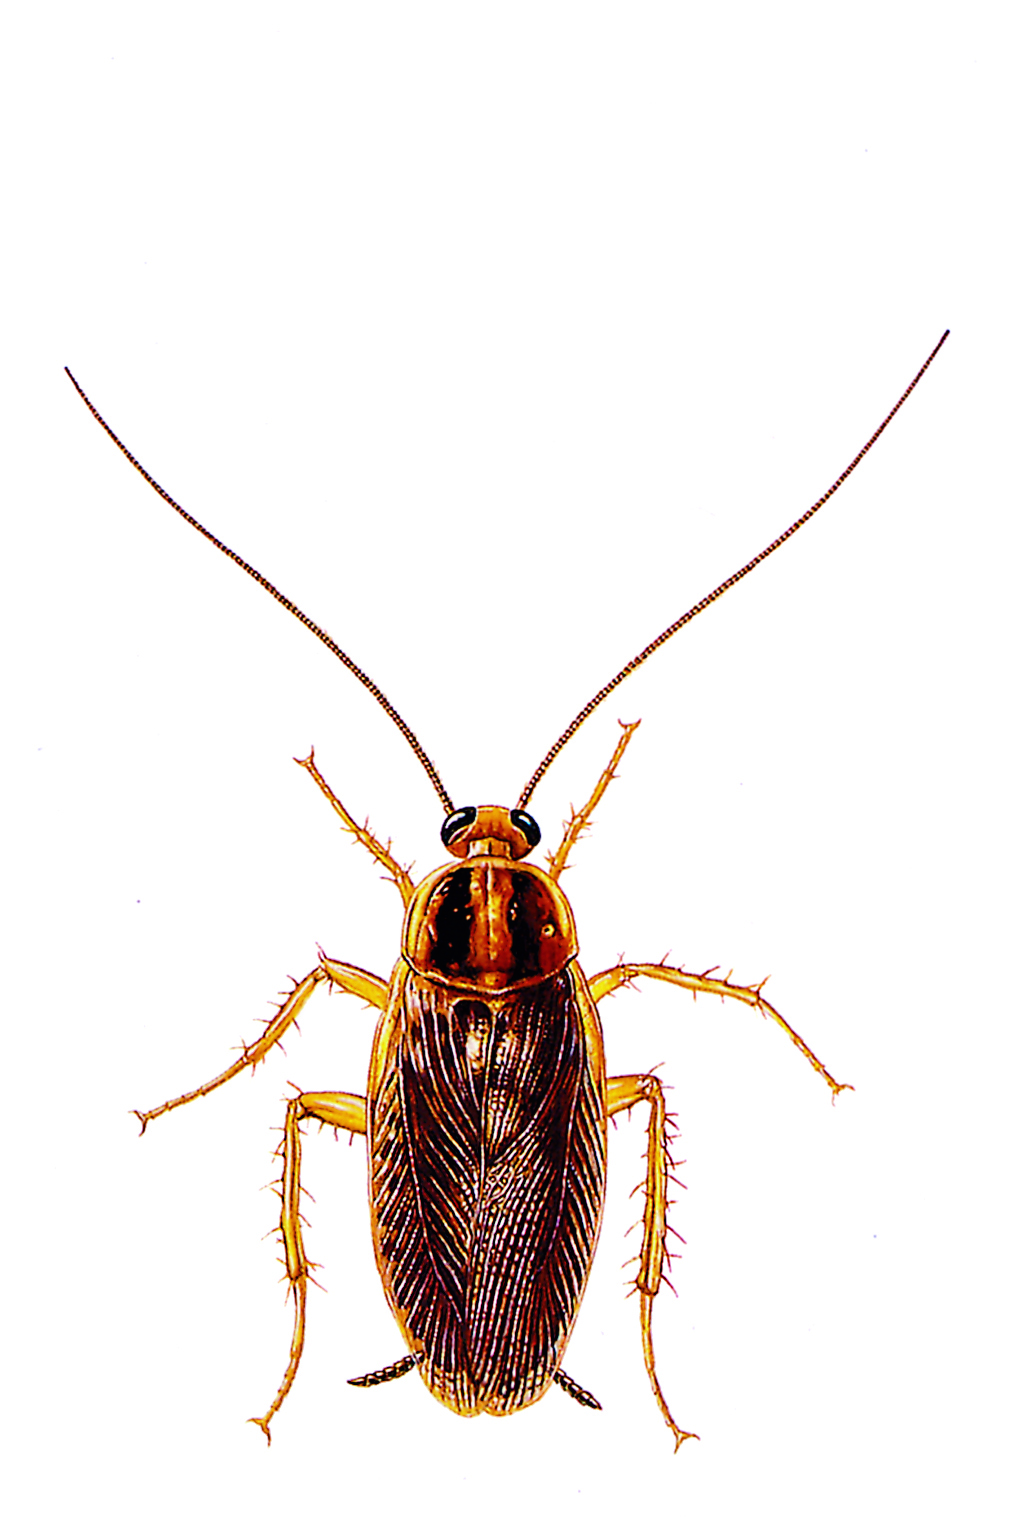 German Cockroach Control and Extermination Pest, INC